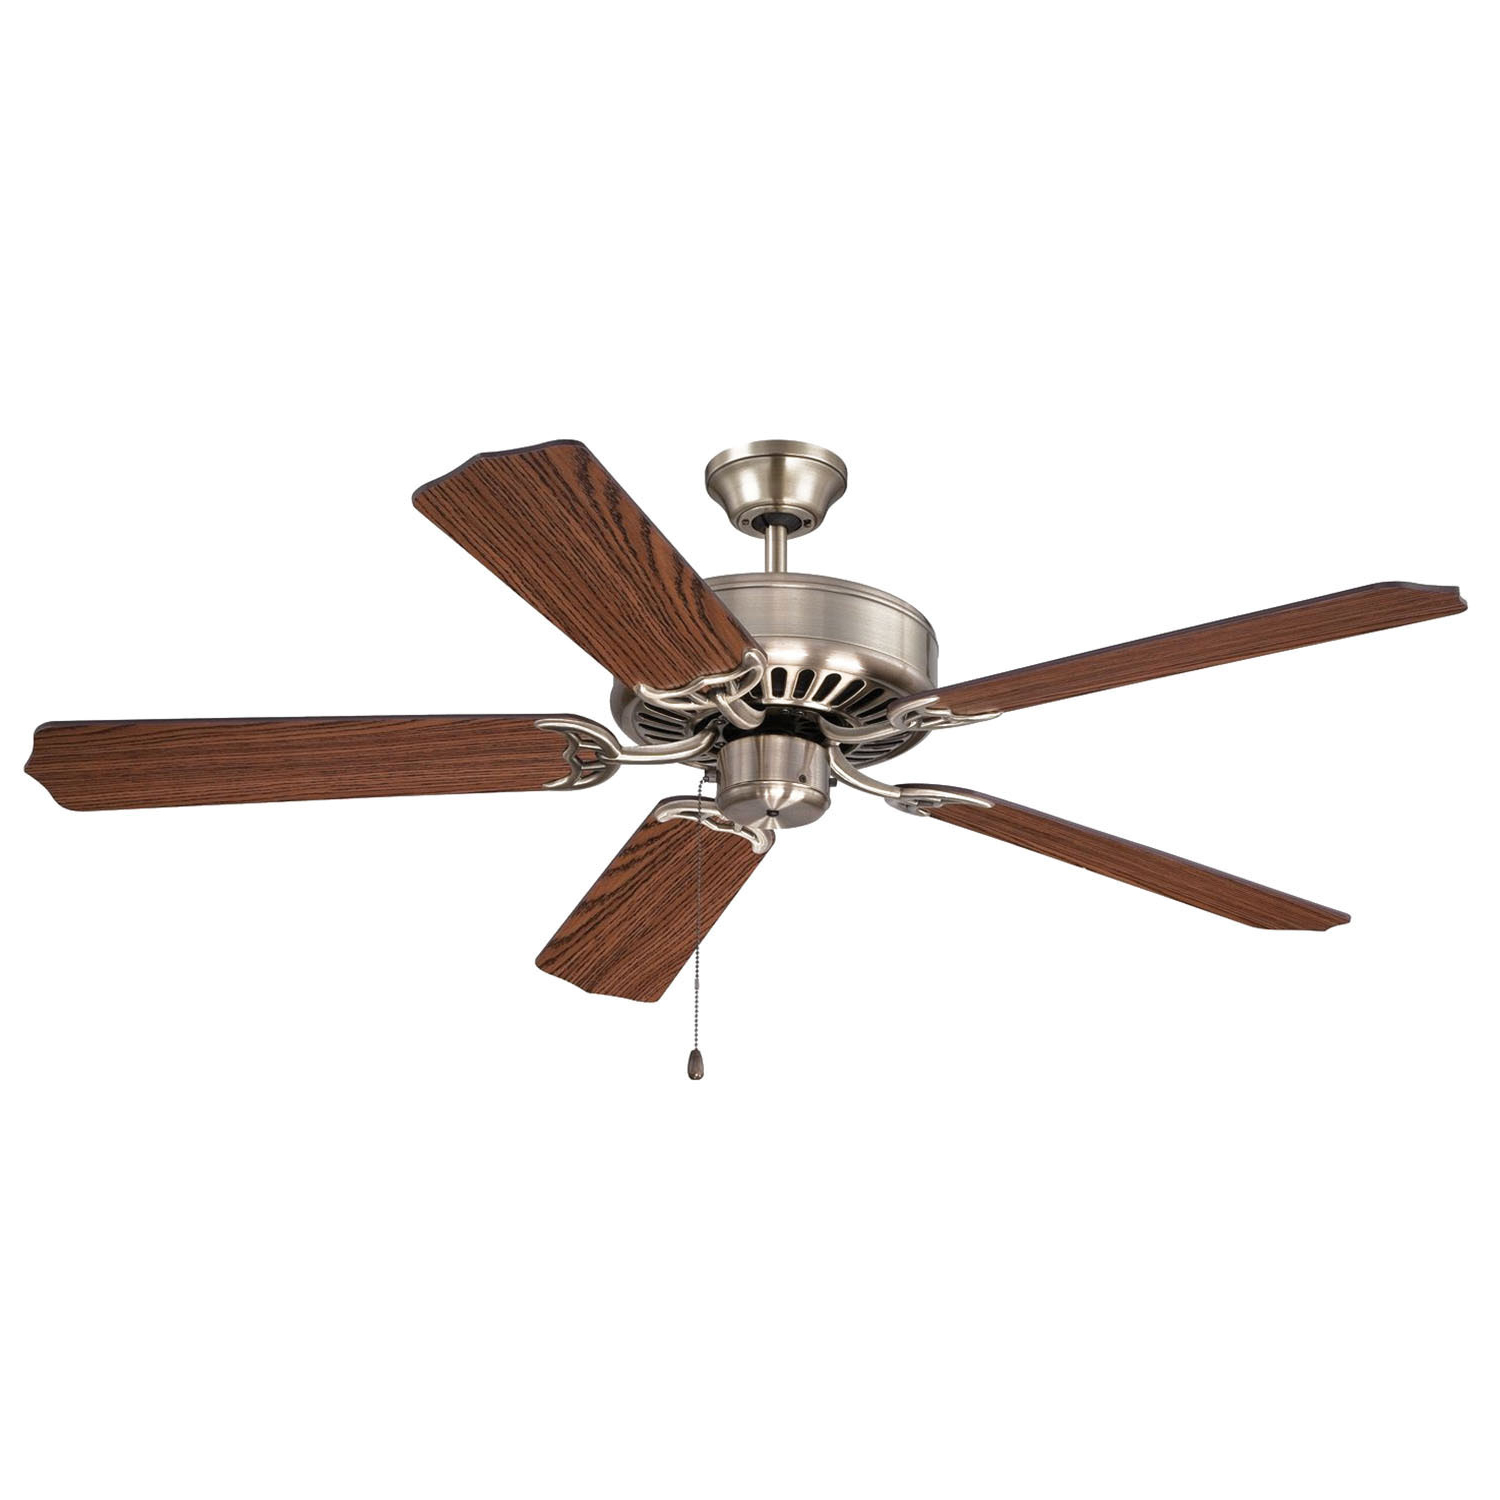 Craftmade C52Bnk Pro Builder Ceiling Fan 52 Inch 5 Blade 3 Speed Brushed  Polished Nickel In Well Known Builder 5 Blade Ceiling Fans (View 12 of 20)